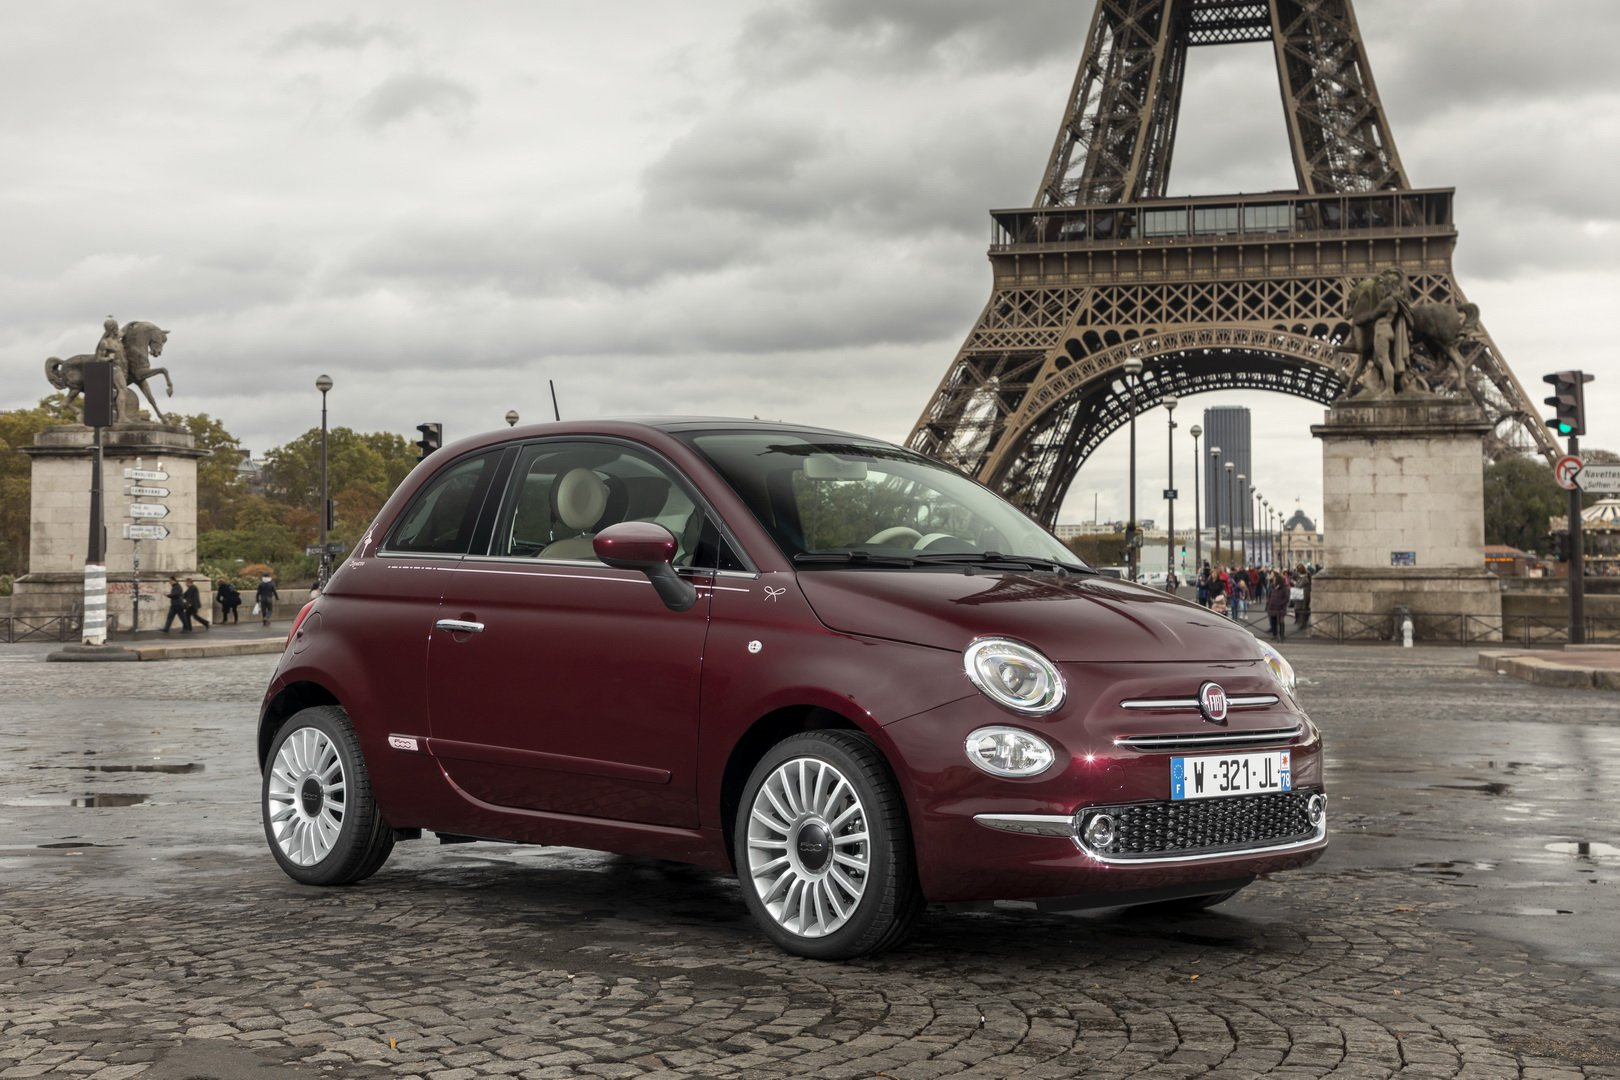 746ce5ab-2018-fiat-500-by-repetto-12